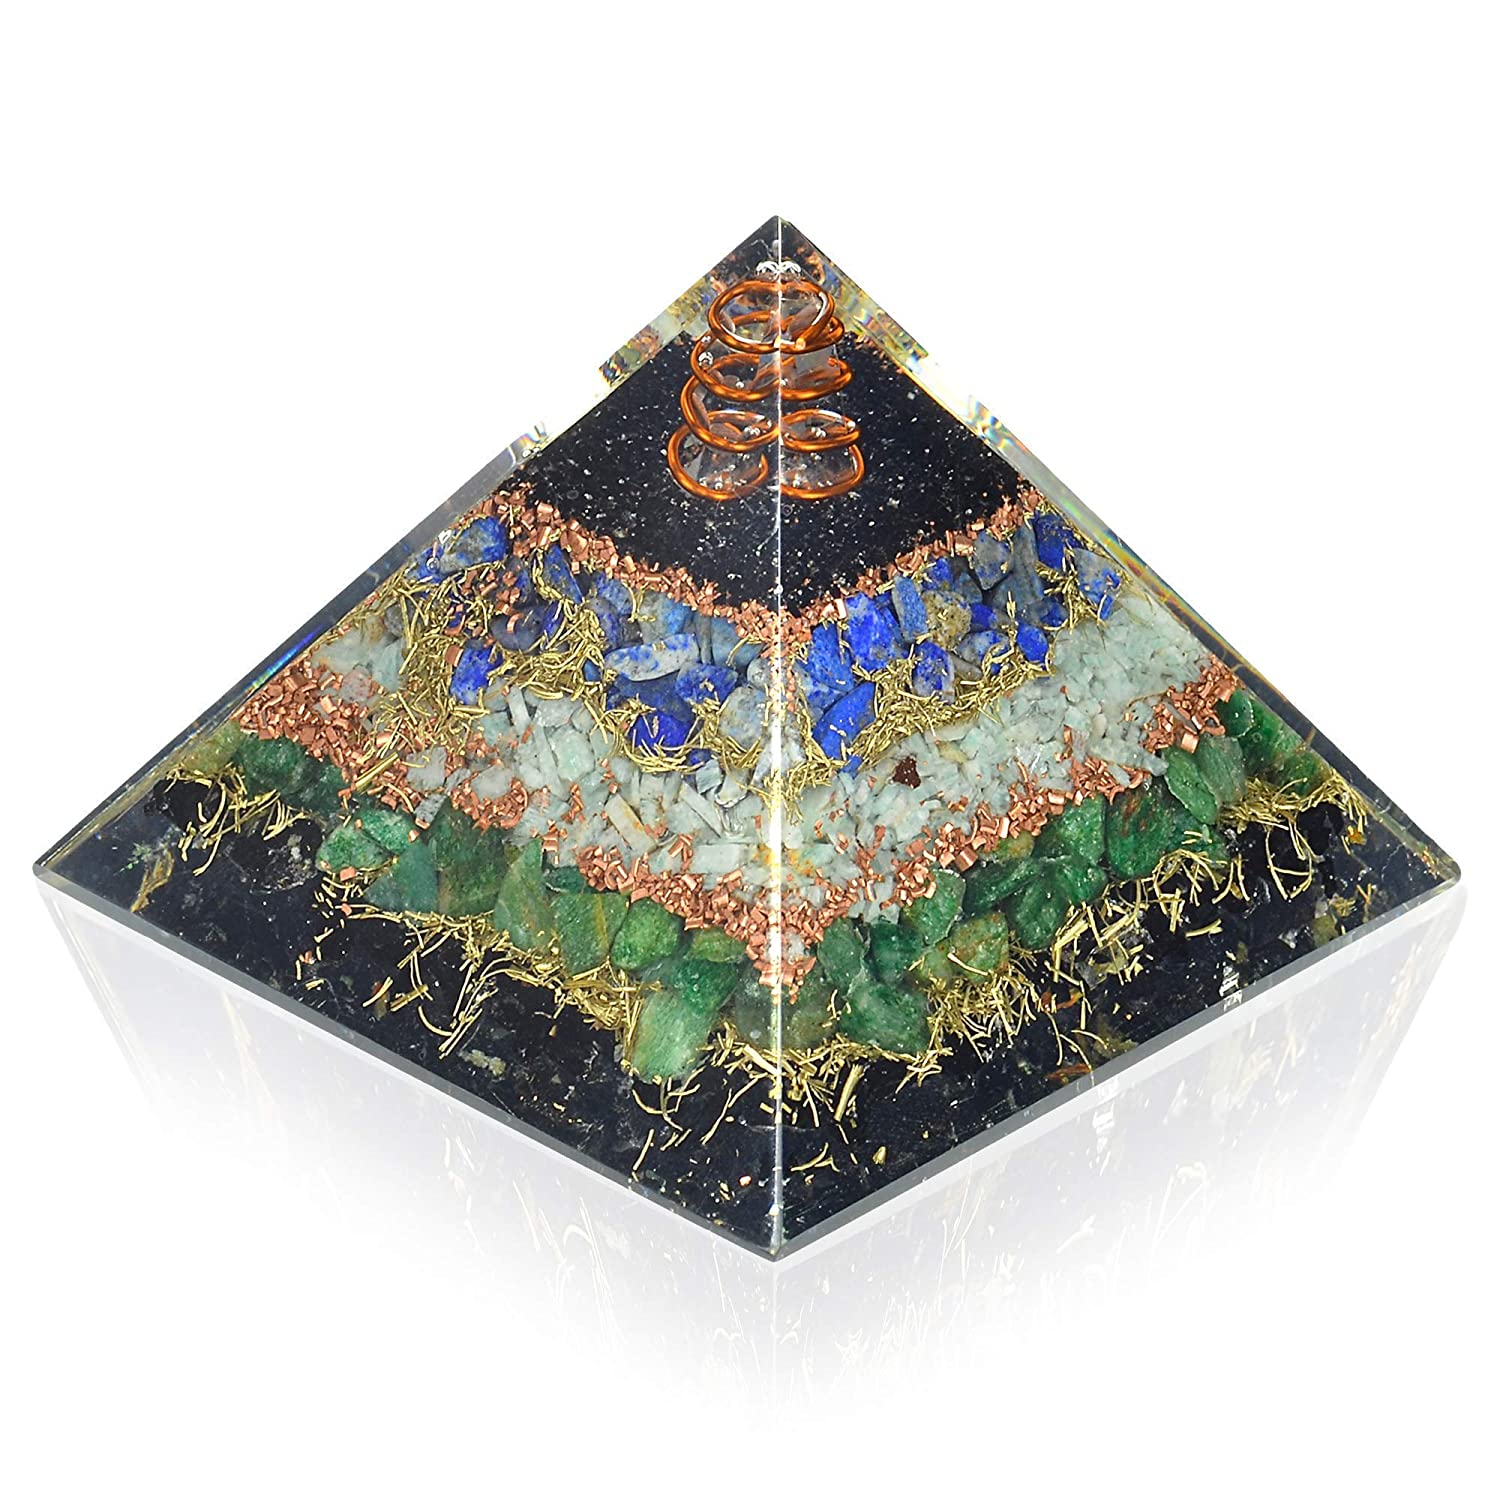 New 70% OFF Outlet Orgone Max 50% OFF Pyramid for Healing Tourmaline Black Lapis Heart